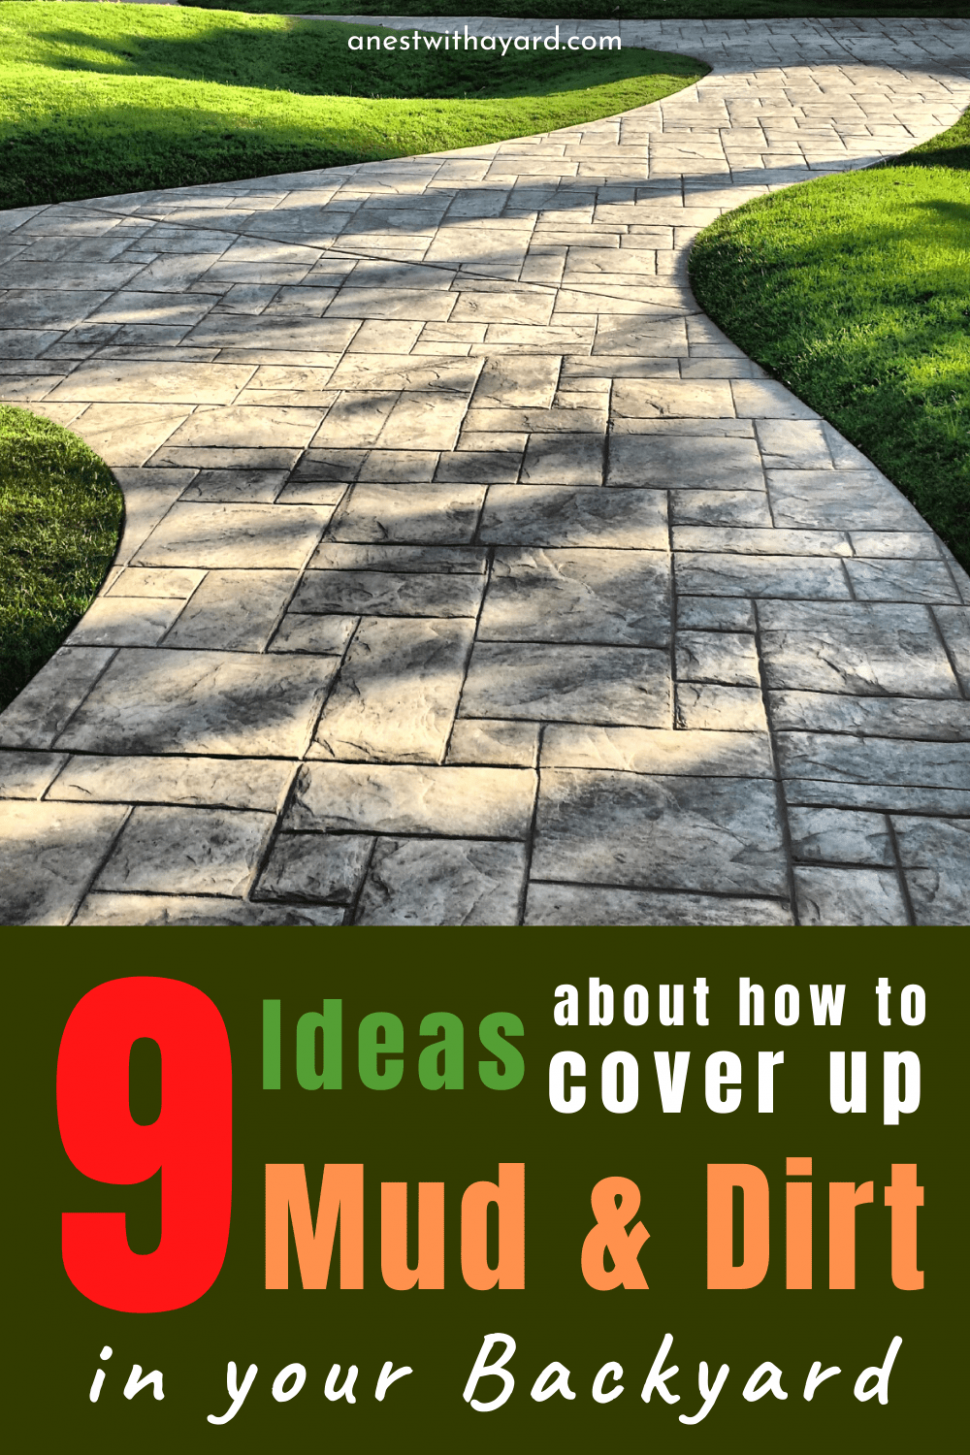 How To Cover Up Mud In Backyard In 9 - A Nest With A Yard - backyard ideas to cover dirt